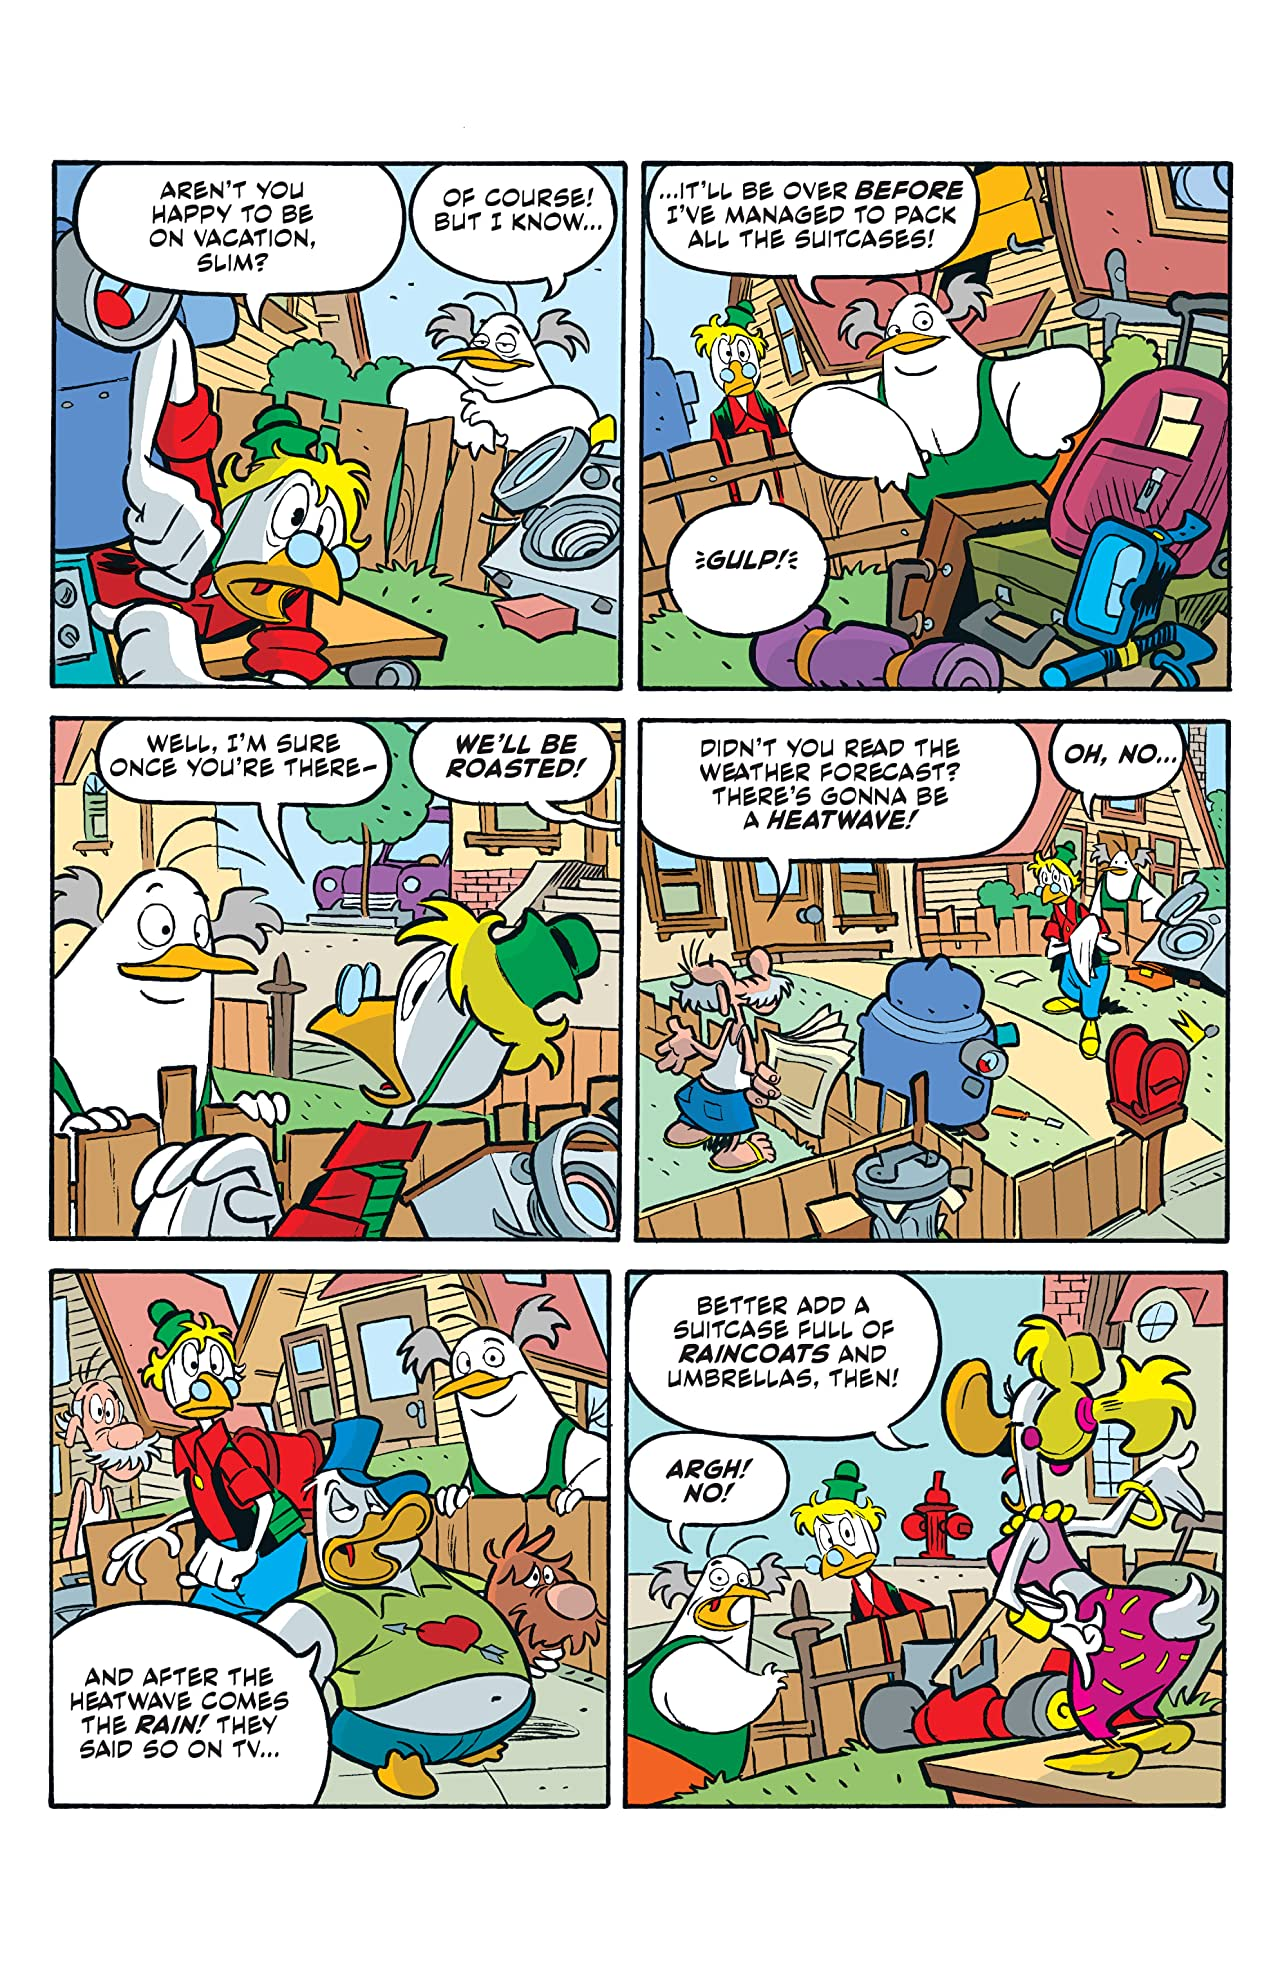 Disney Comics and Stories #11